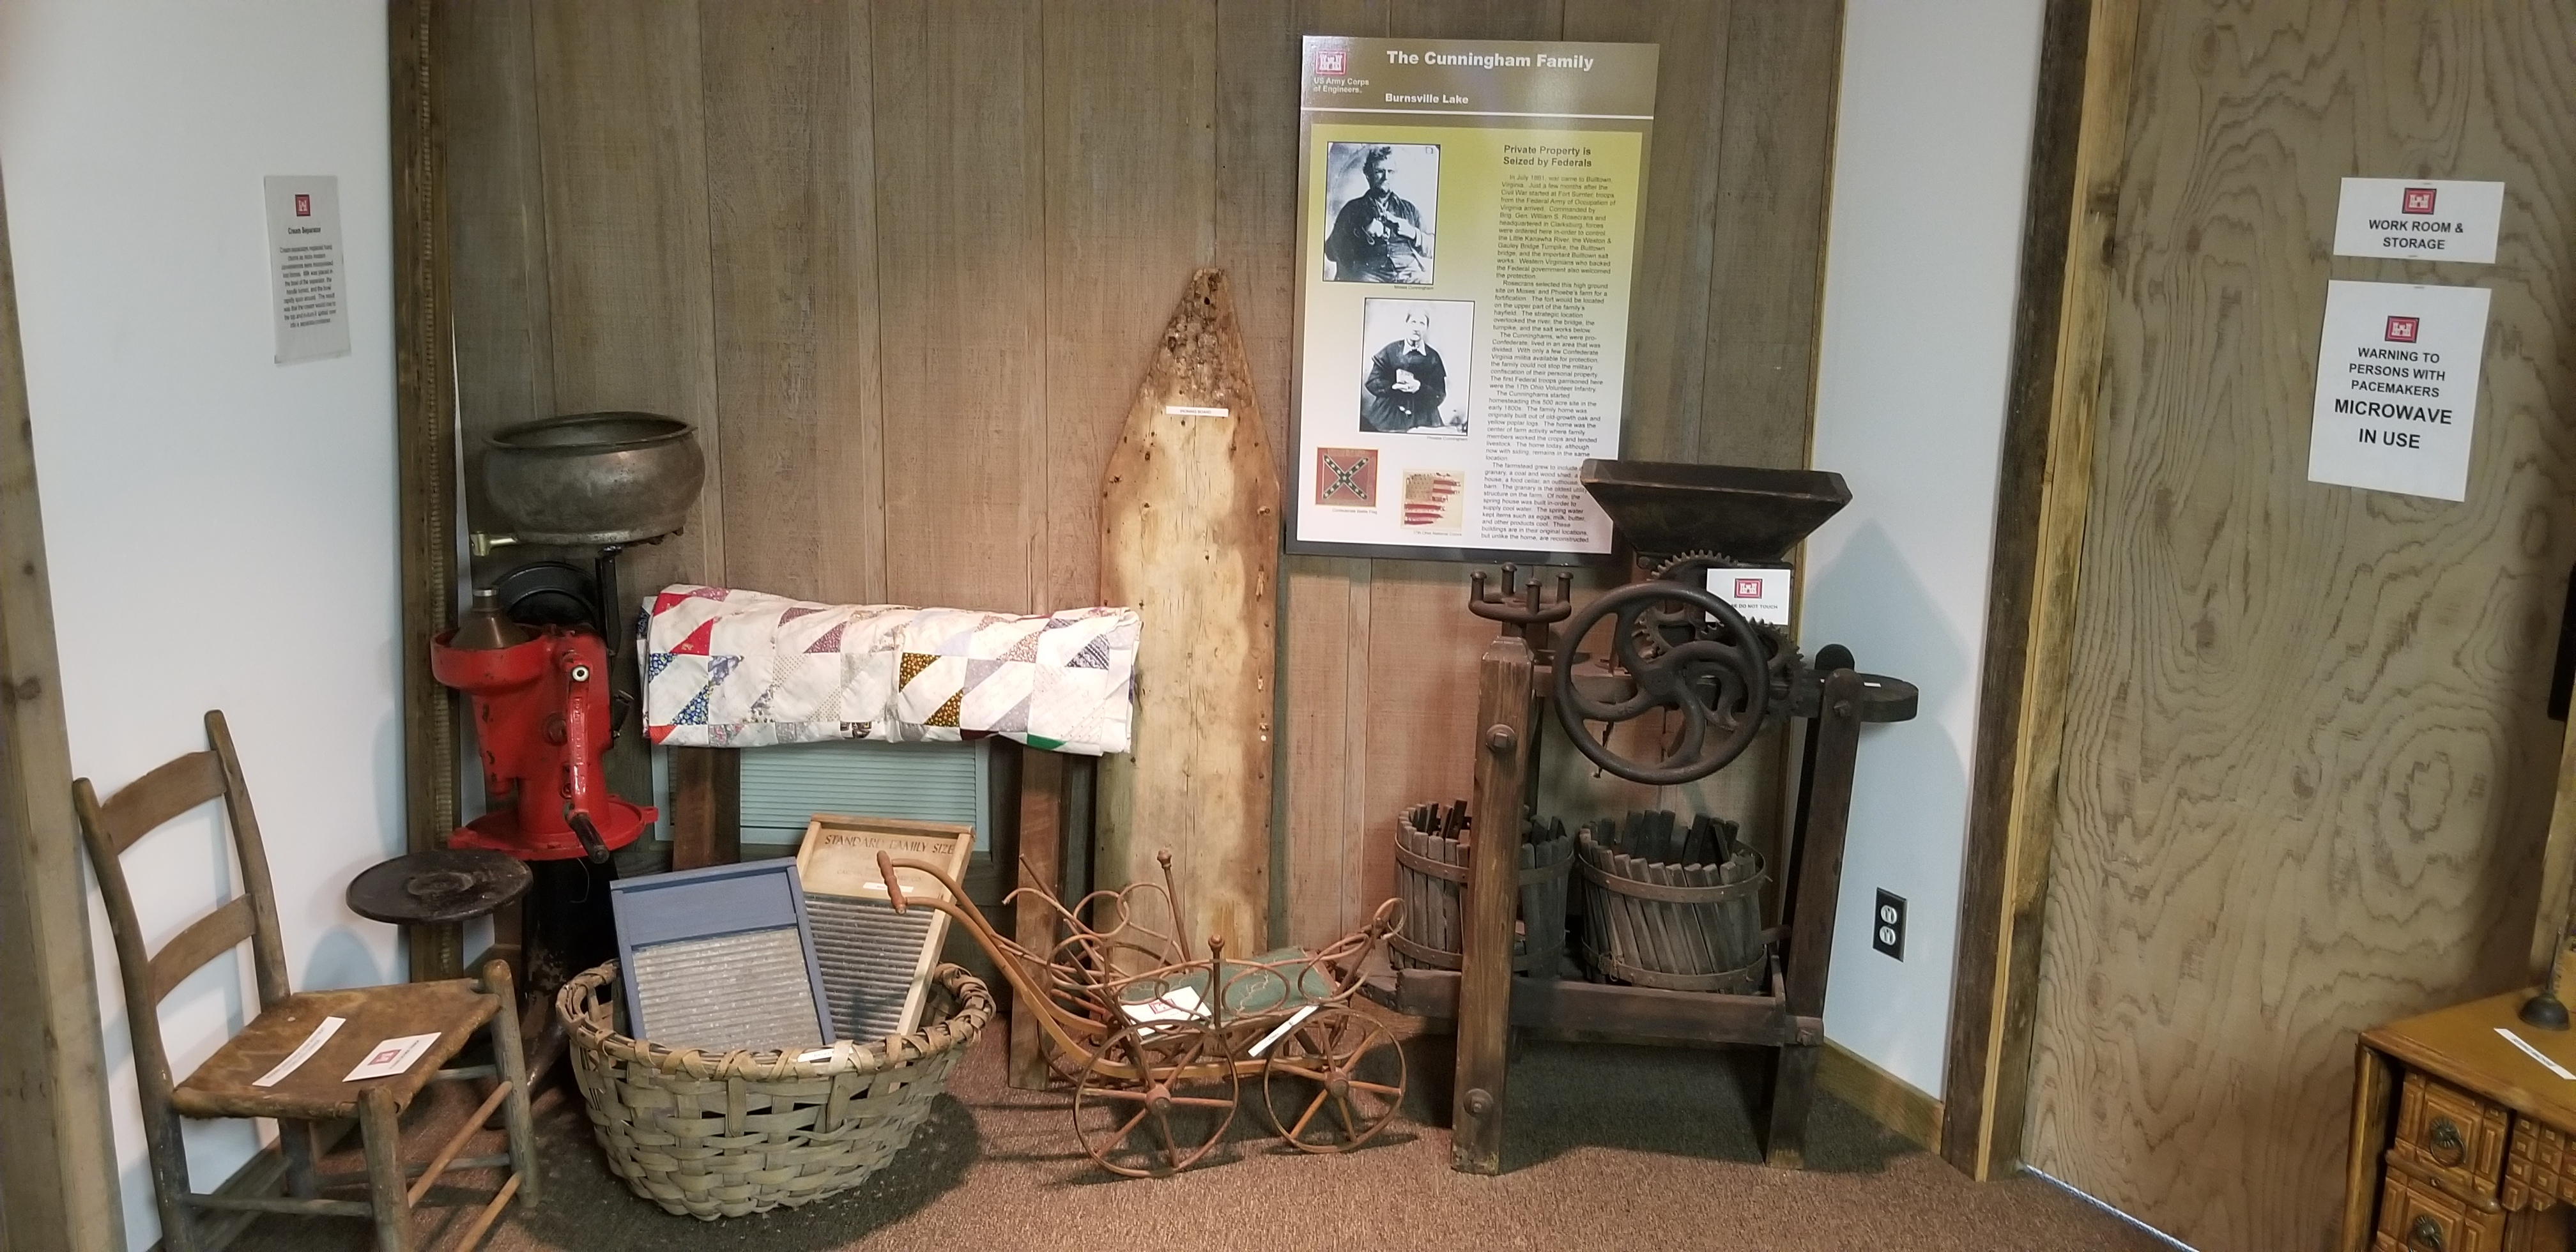 Cunningham Family display and items